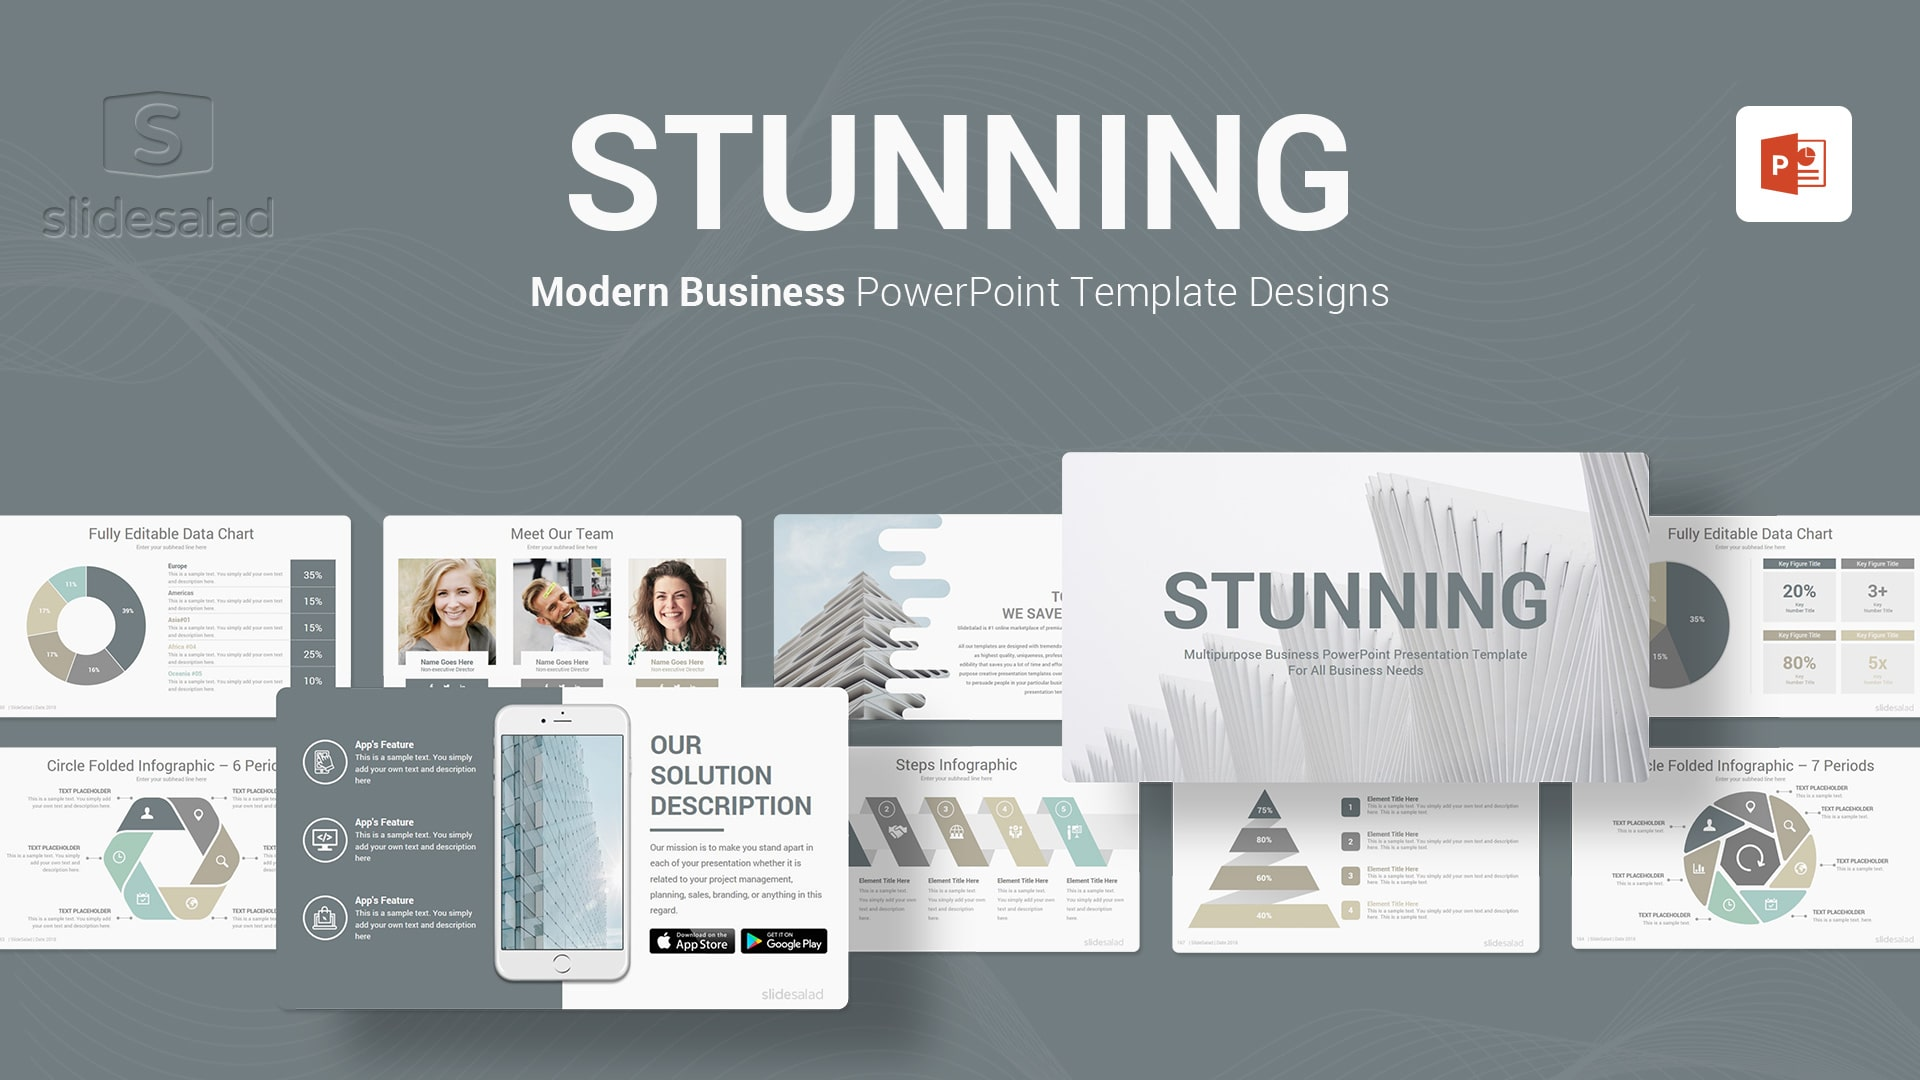 Stunning PowerPoint Template Multipurpose Designs - Casual Webinar Business PowerPoint Presentation Theme